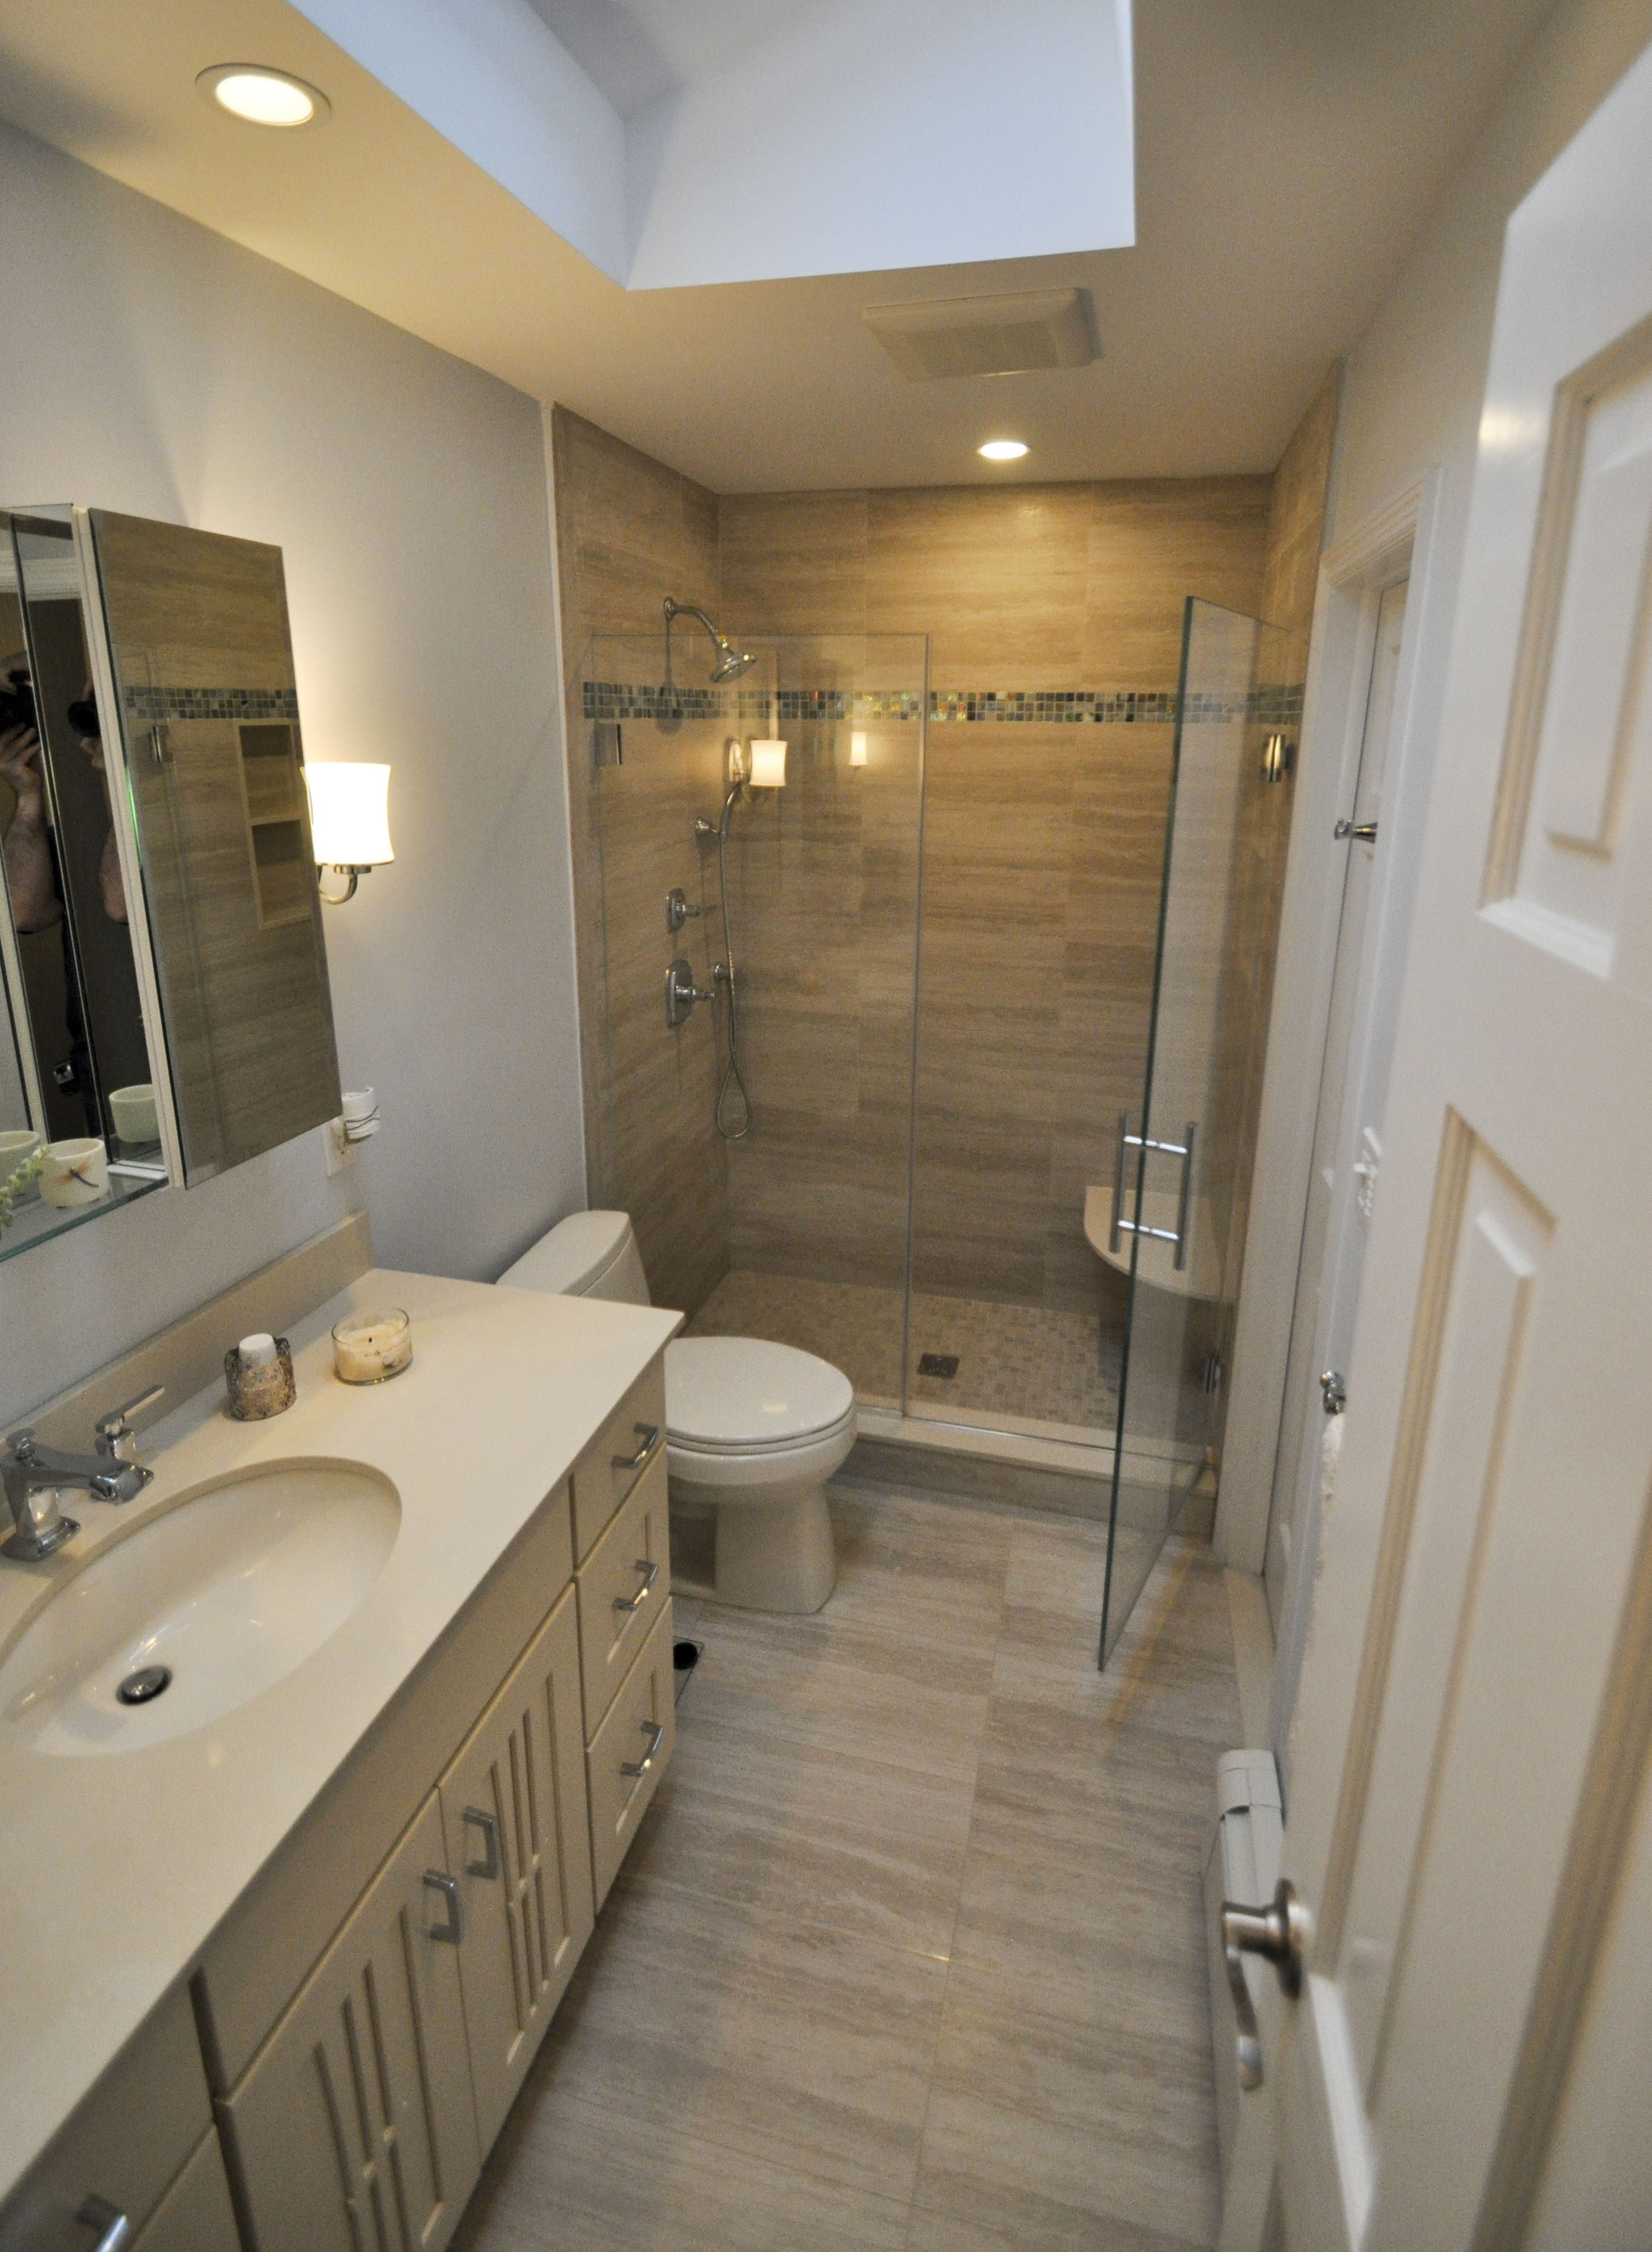 9x5 Bathroom With Stand Up Shower Small Bathroom Layout Bathroom Floor Plans Bathroom Layout